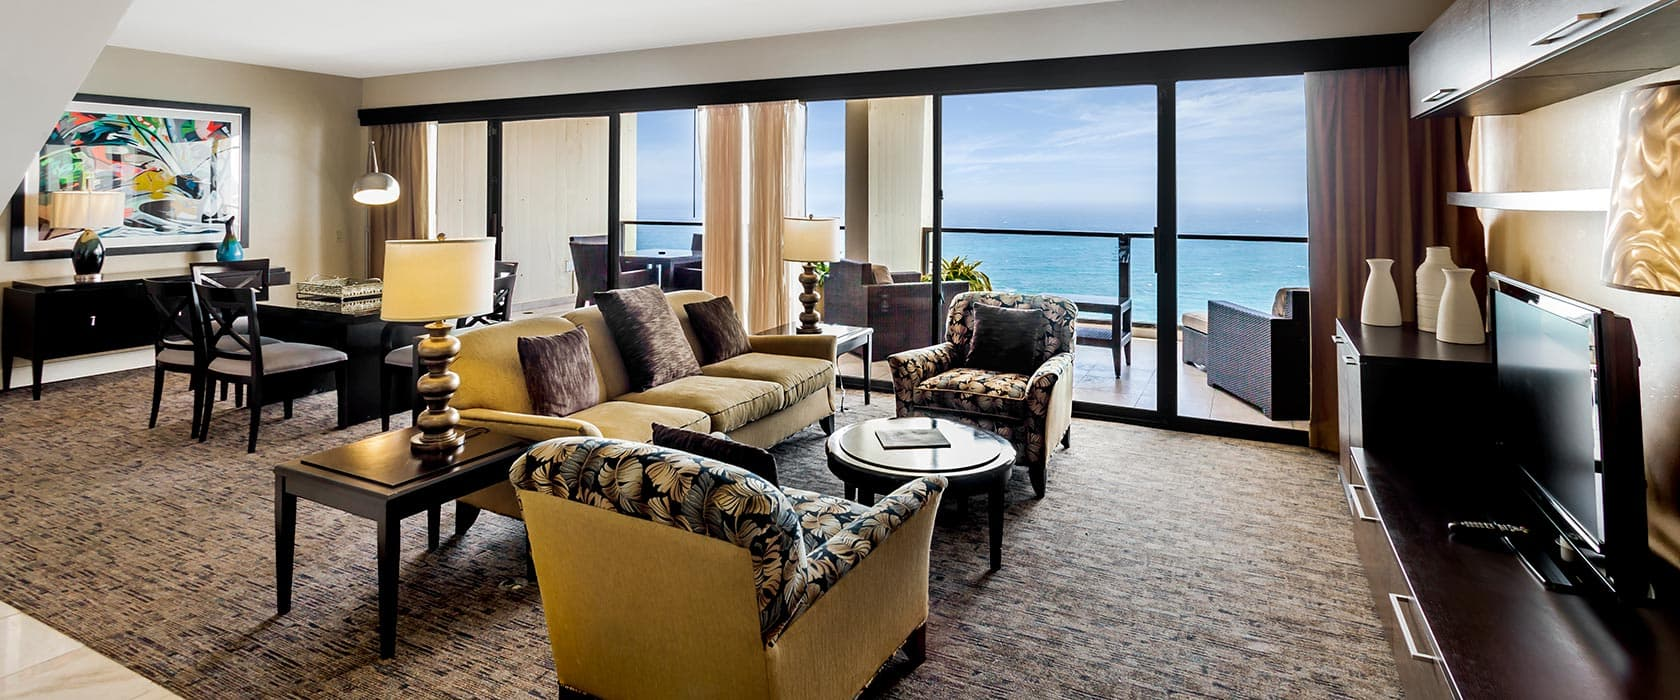 2 bedroom suite hotels in puerto rico discover an array of delightful views and plenty space to relax or entertain suites caribe hilton san juan accommodations